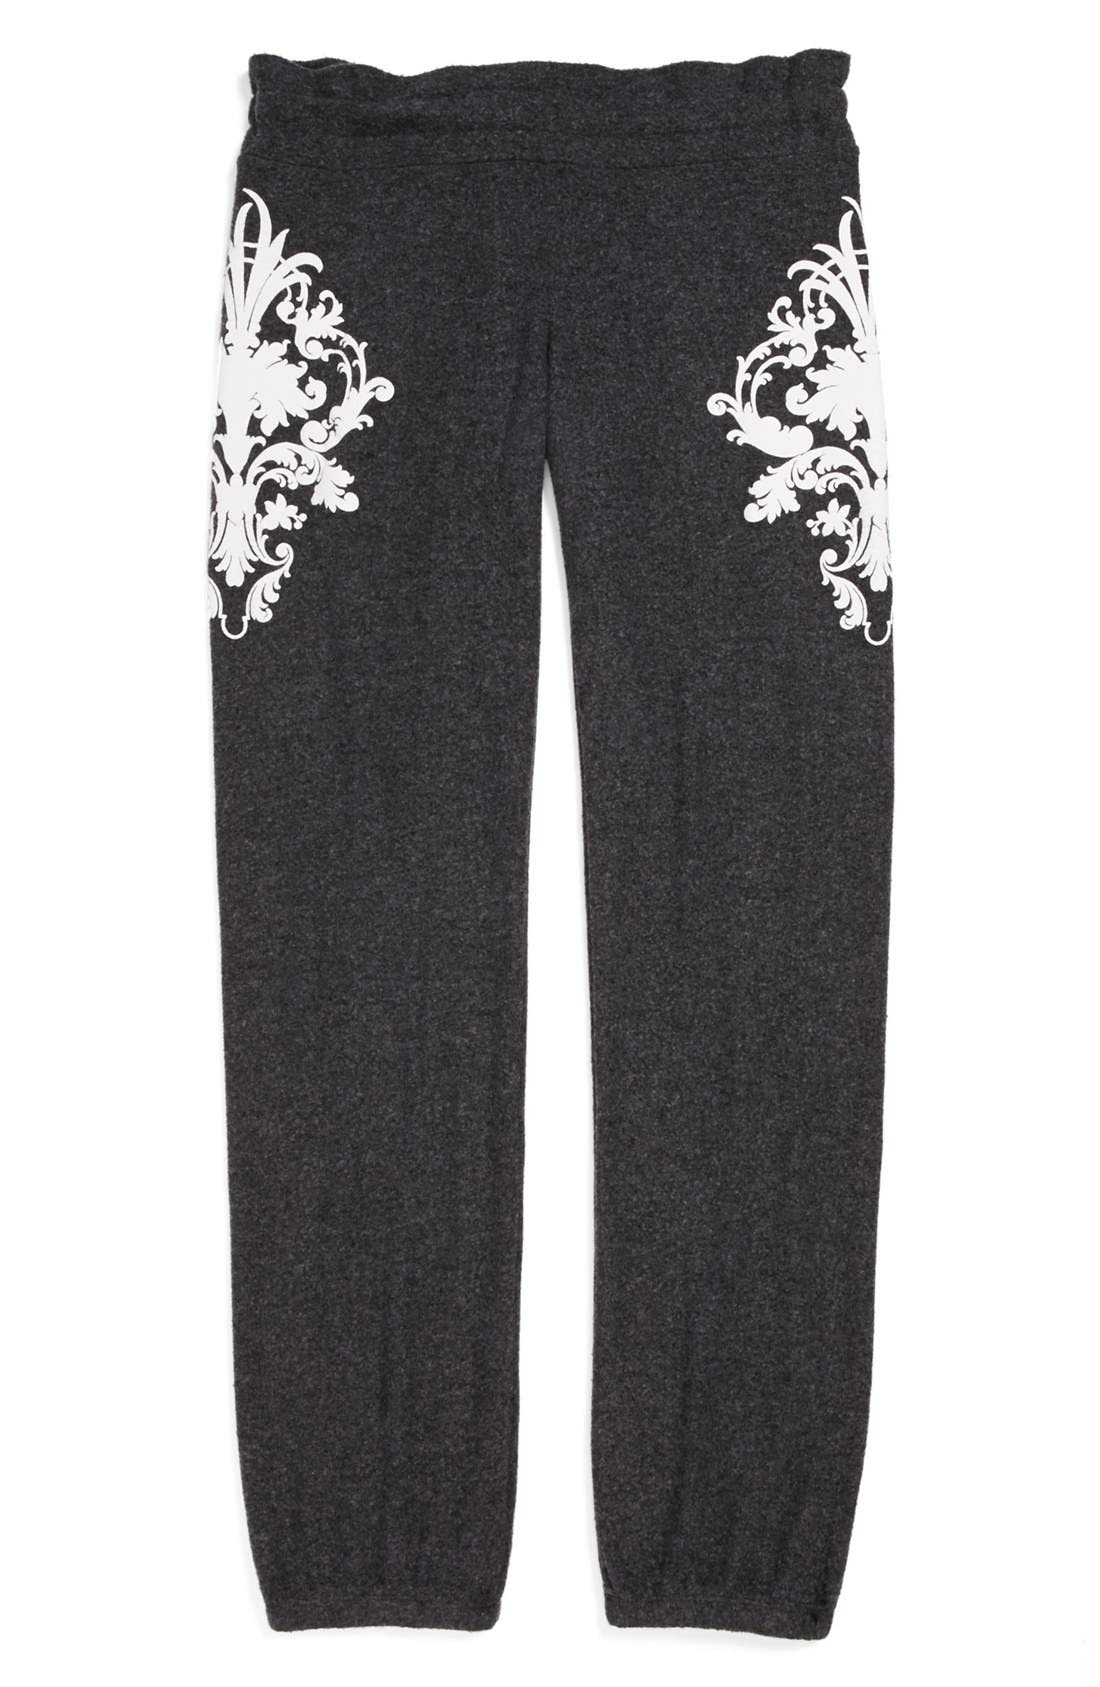 Alternate Image 1 Selected - Wildfox 'Summer Night' Pants (Big Girls)